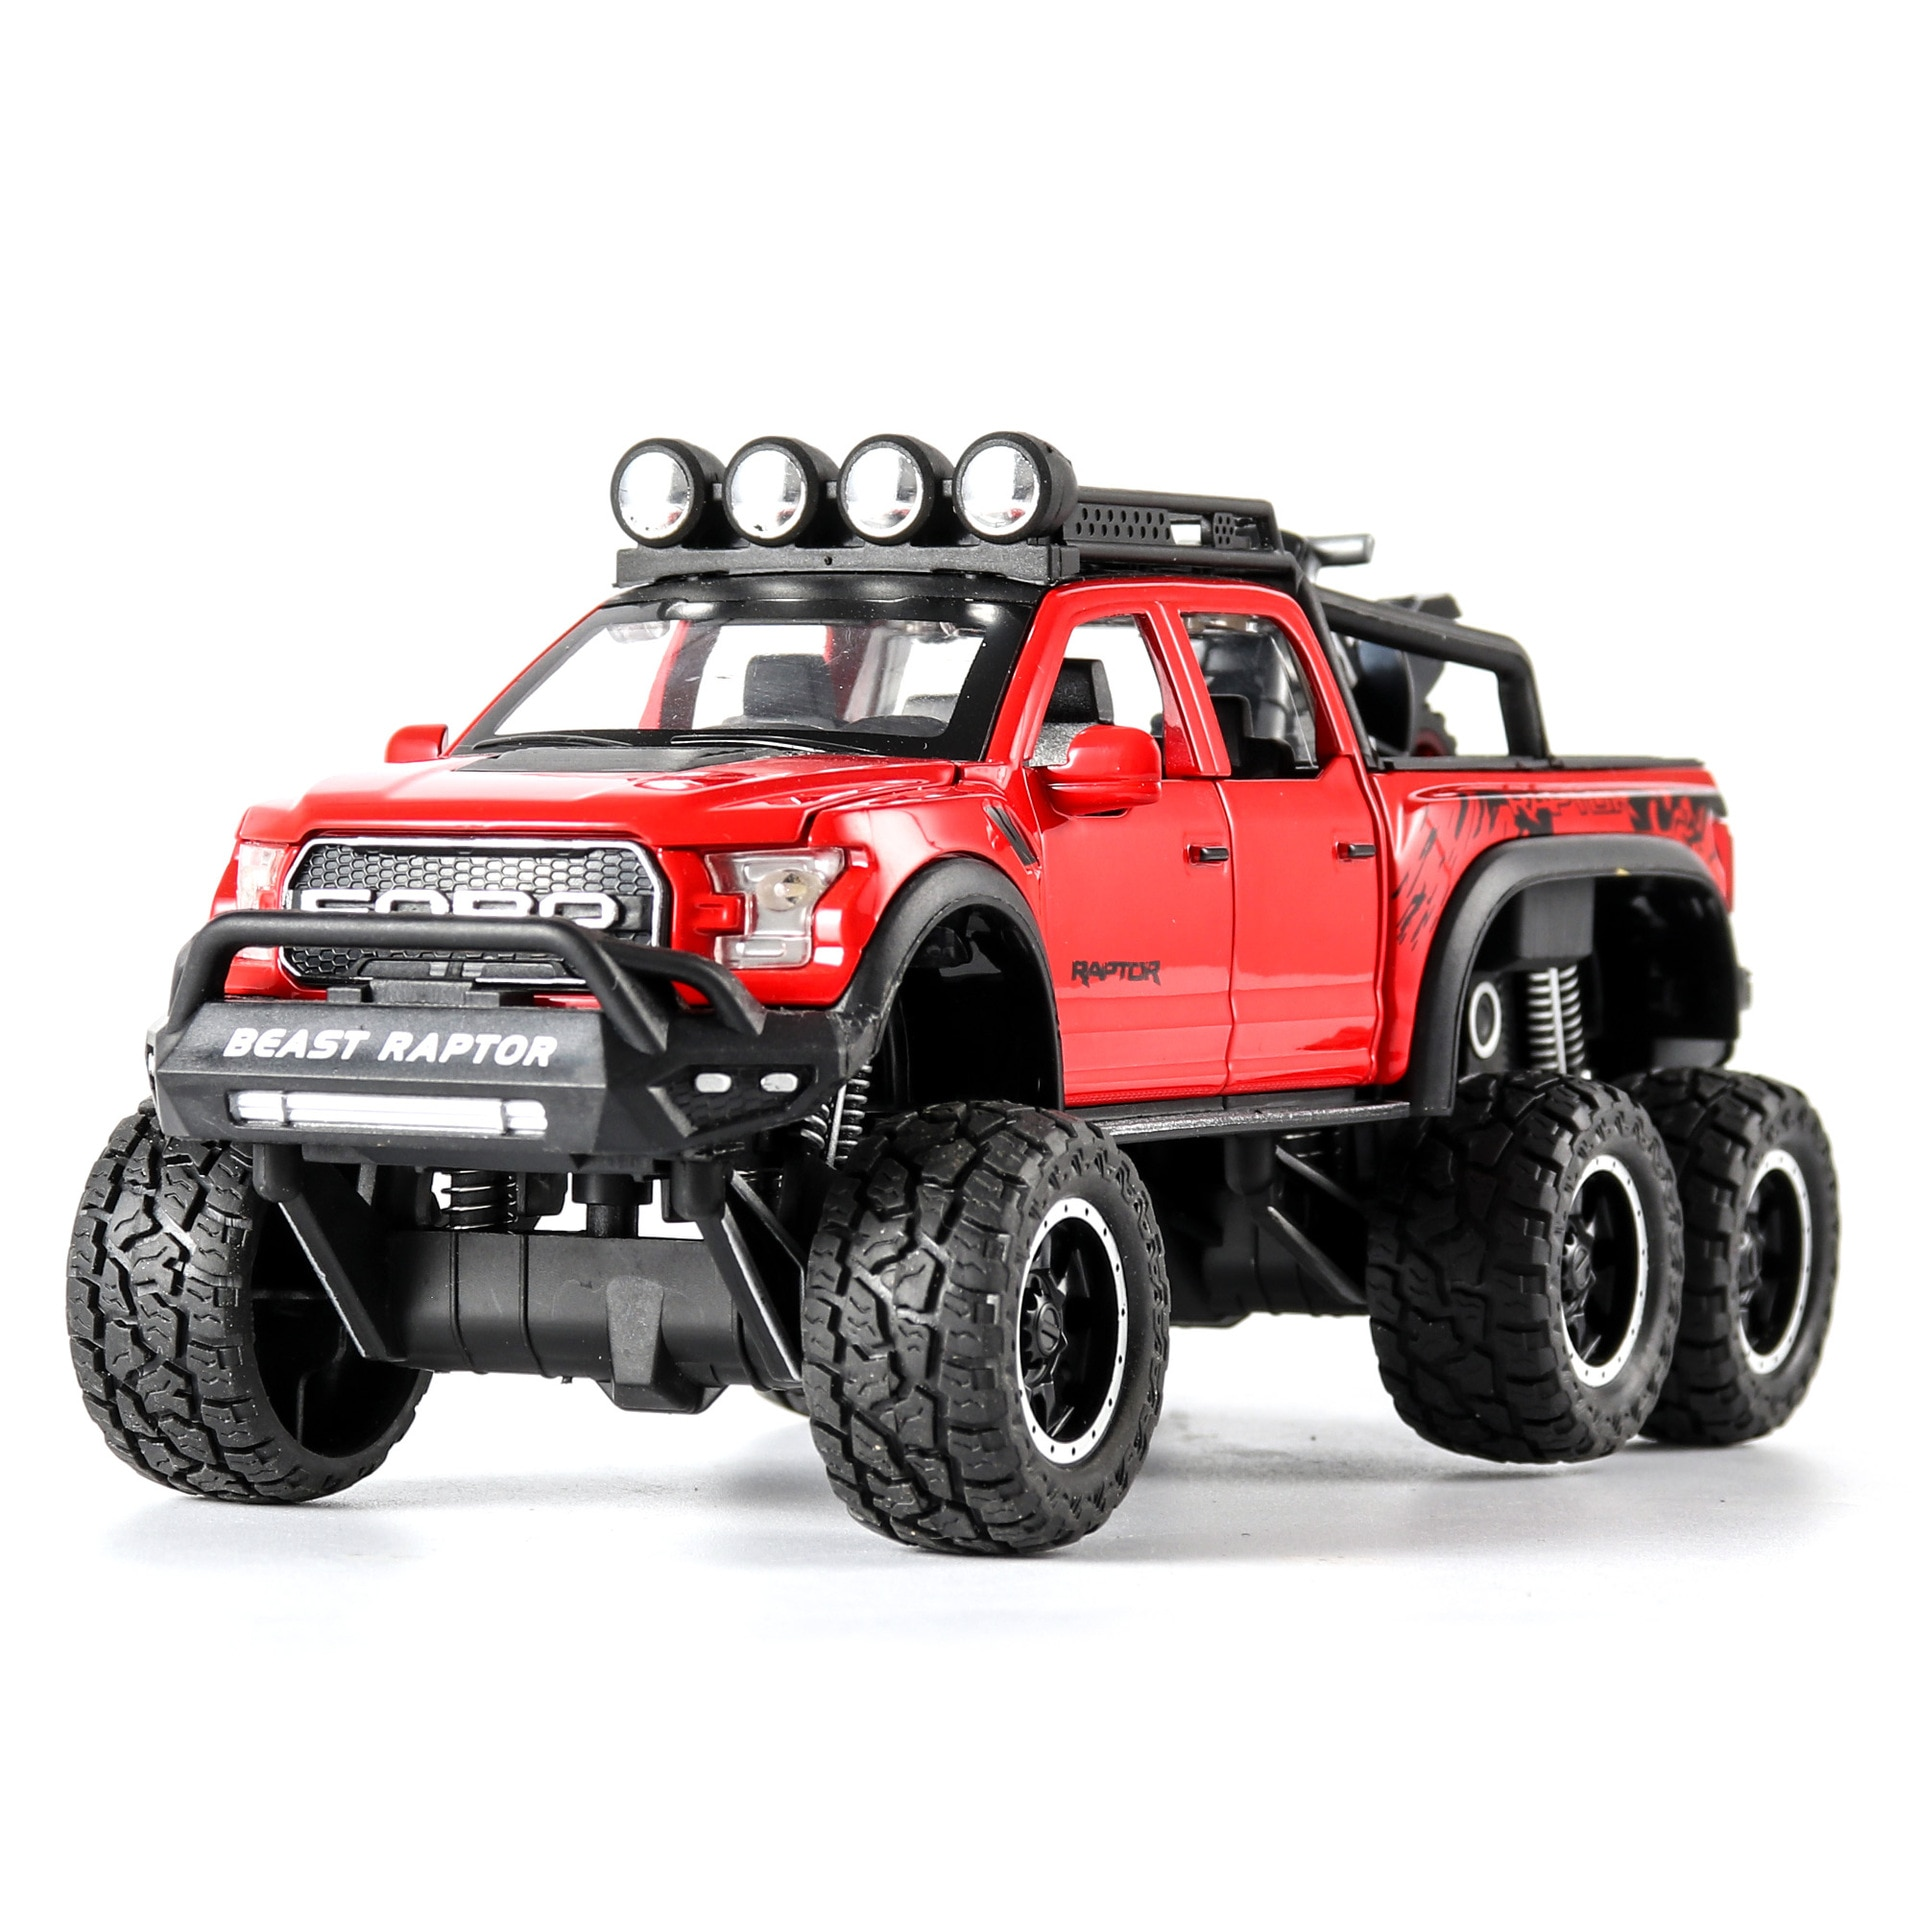 1:24 Off-road Vehicle Alloy Toy Car Diecast Metal Simulation Suv Sound Light Pull Back Wheels Car Collection Boys Toys Kids Gift 1 24 diecast alloy car model metal car toy wheels toy vehicle simulation sound light pull back car collection kids toy car gift